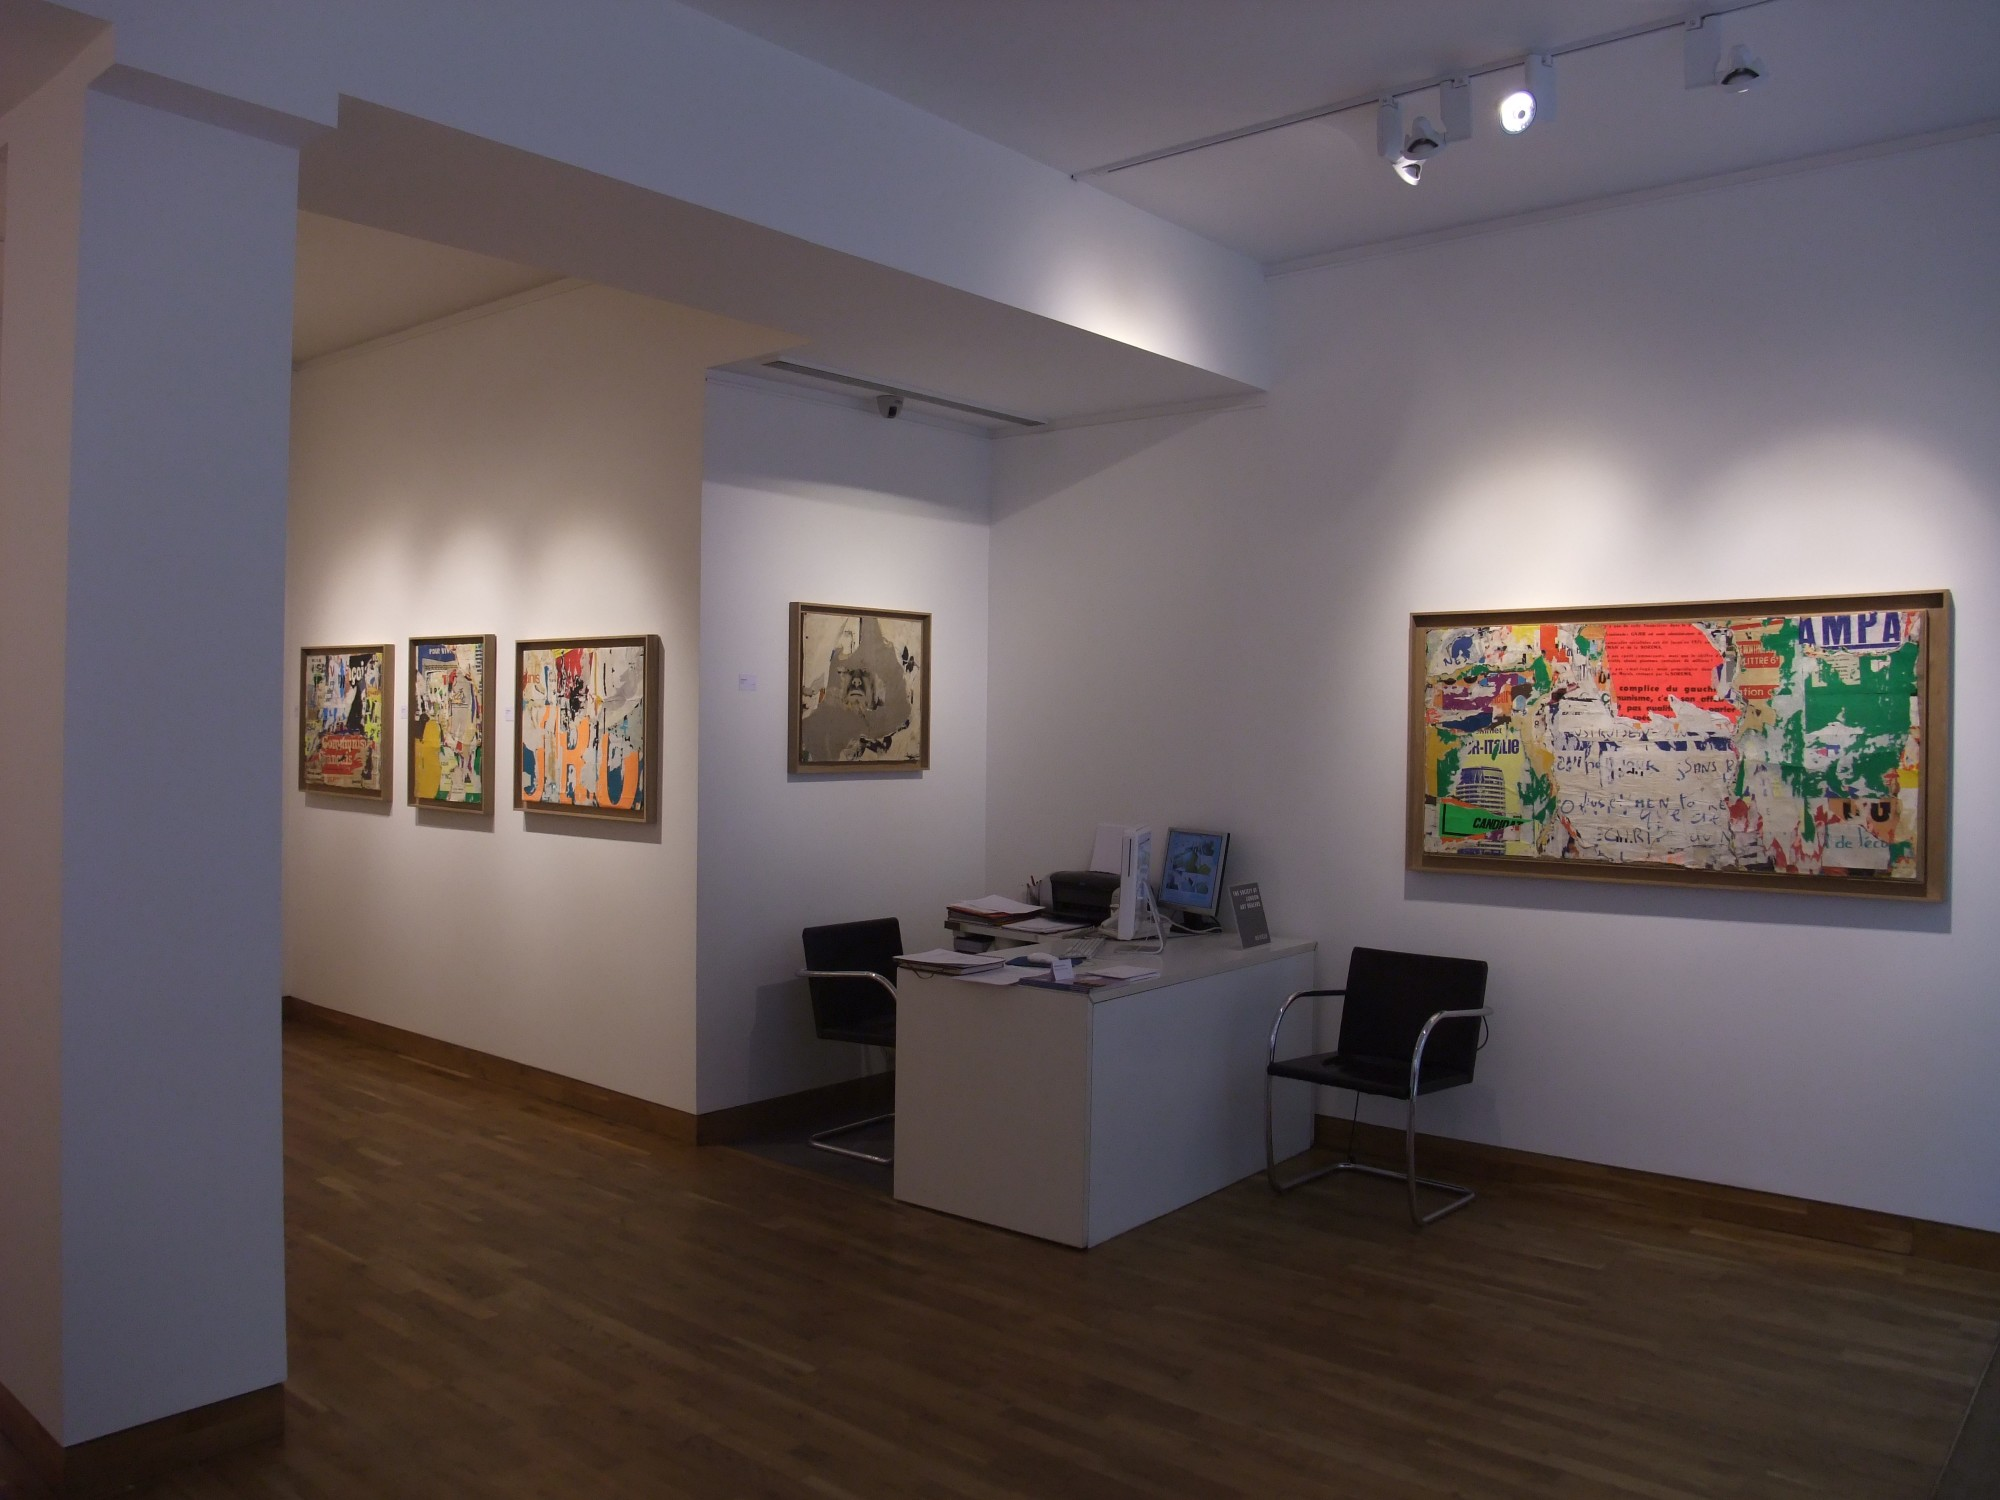 """<span class=""""link fancybox-details-link""""><a href=""""/exhibitions/97/works/image_standalone334/"""">View Detail Page</a></span><p>MIMMO ROTELLA & JACQUES VILLEGLÉ   22 SEP - 24 OCT 2008   Installation View</p>"""